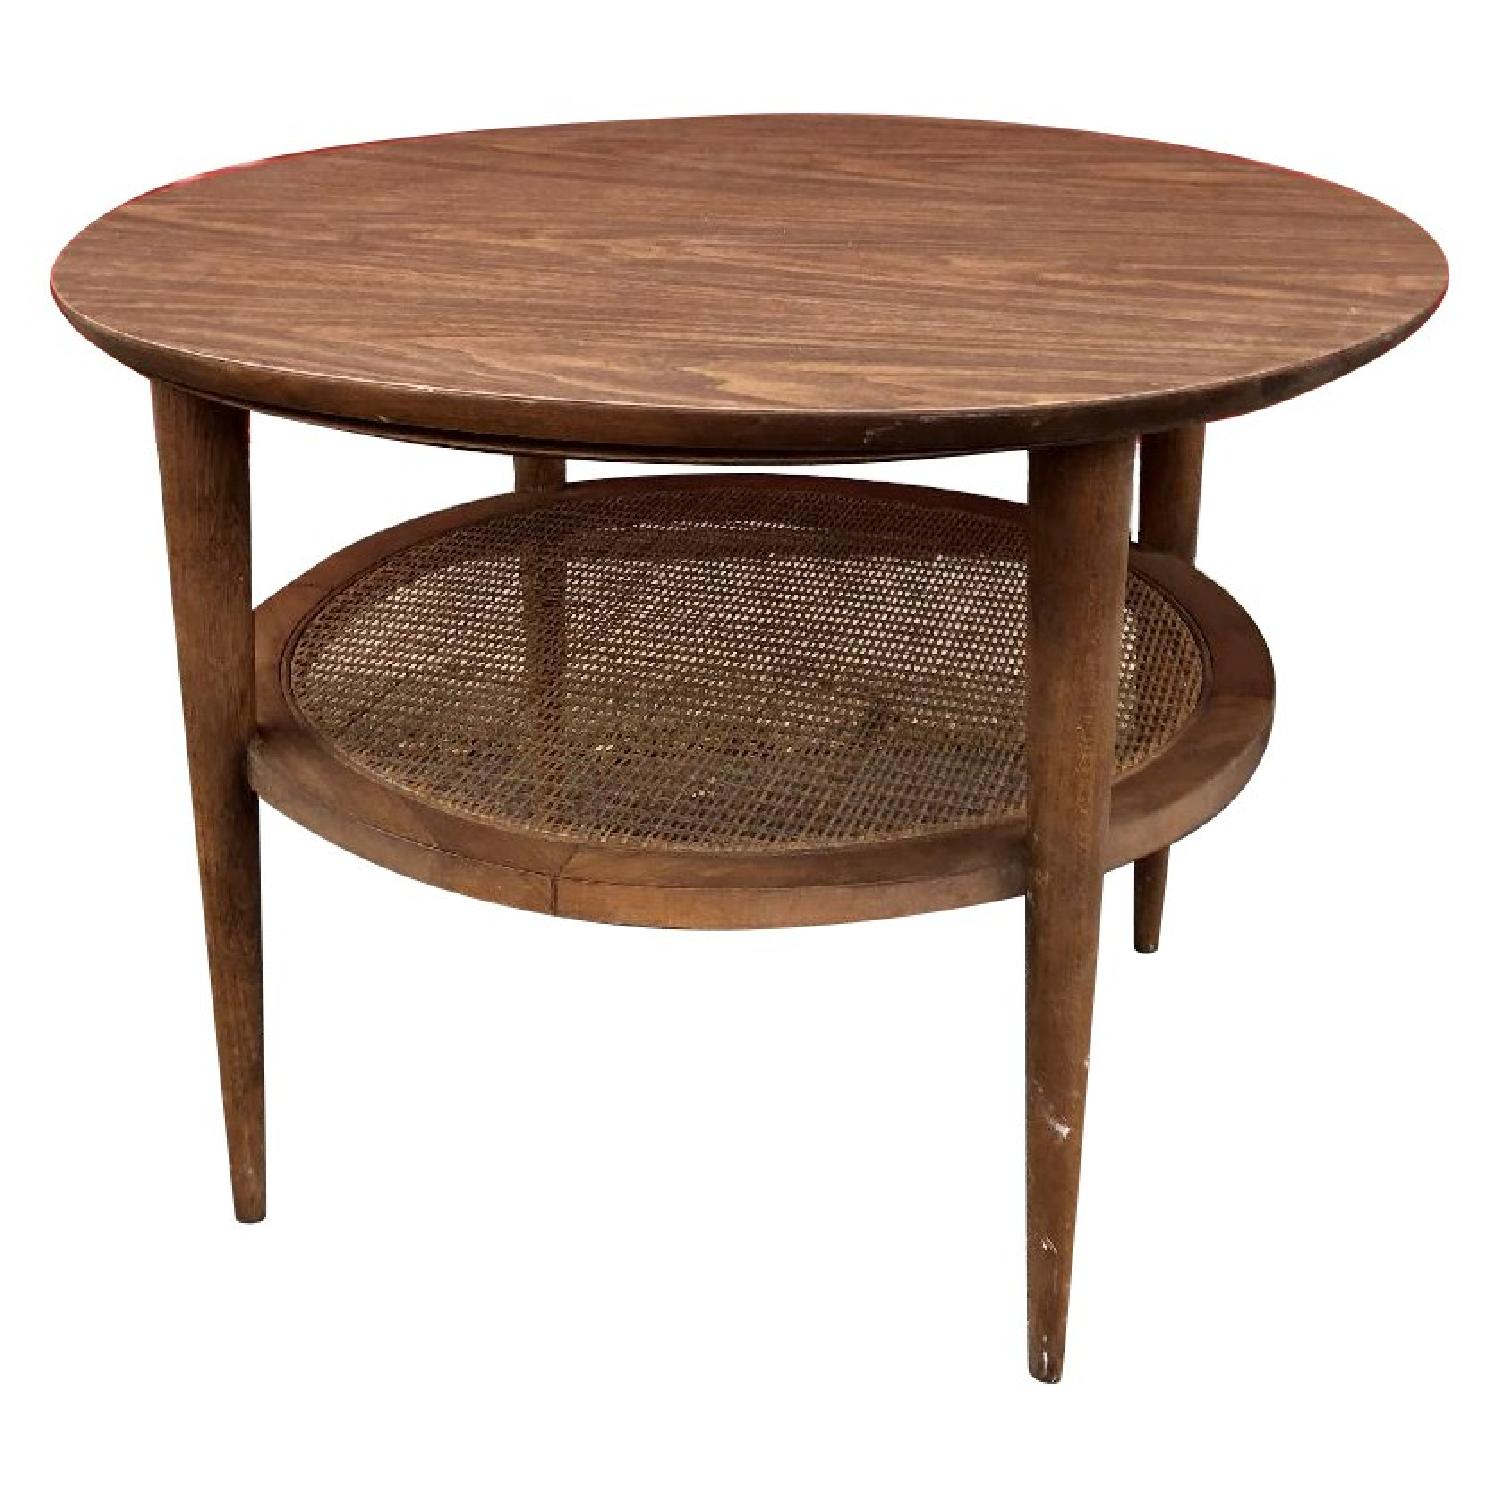 Lane Mid Century Modern Round End Table w/ Cane Shelf